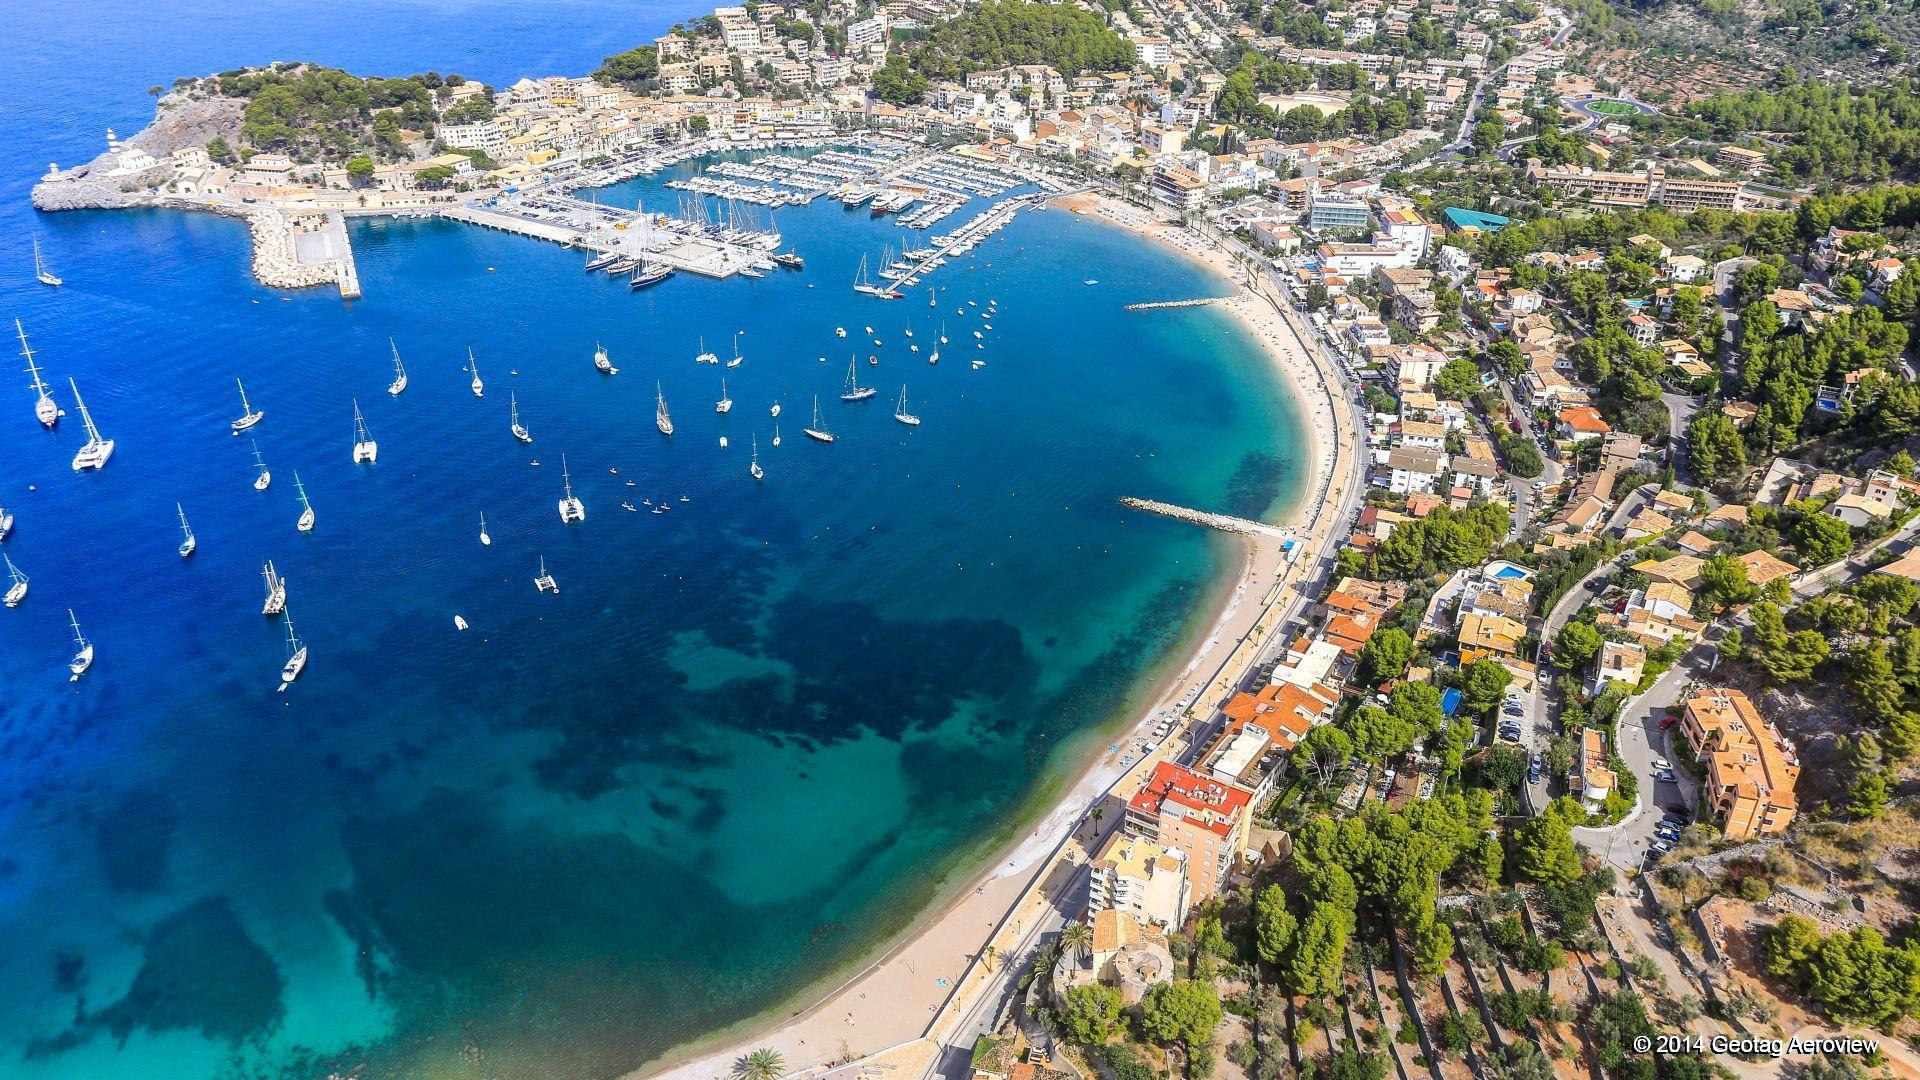 Spain'sMostFantasized Locations You Should Check Out